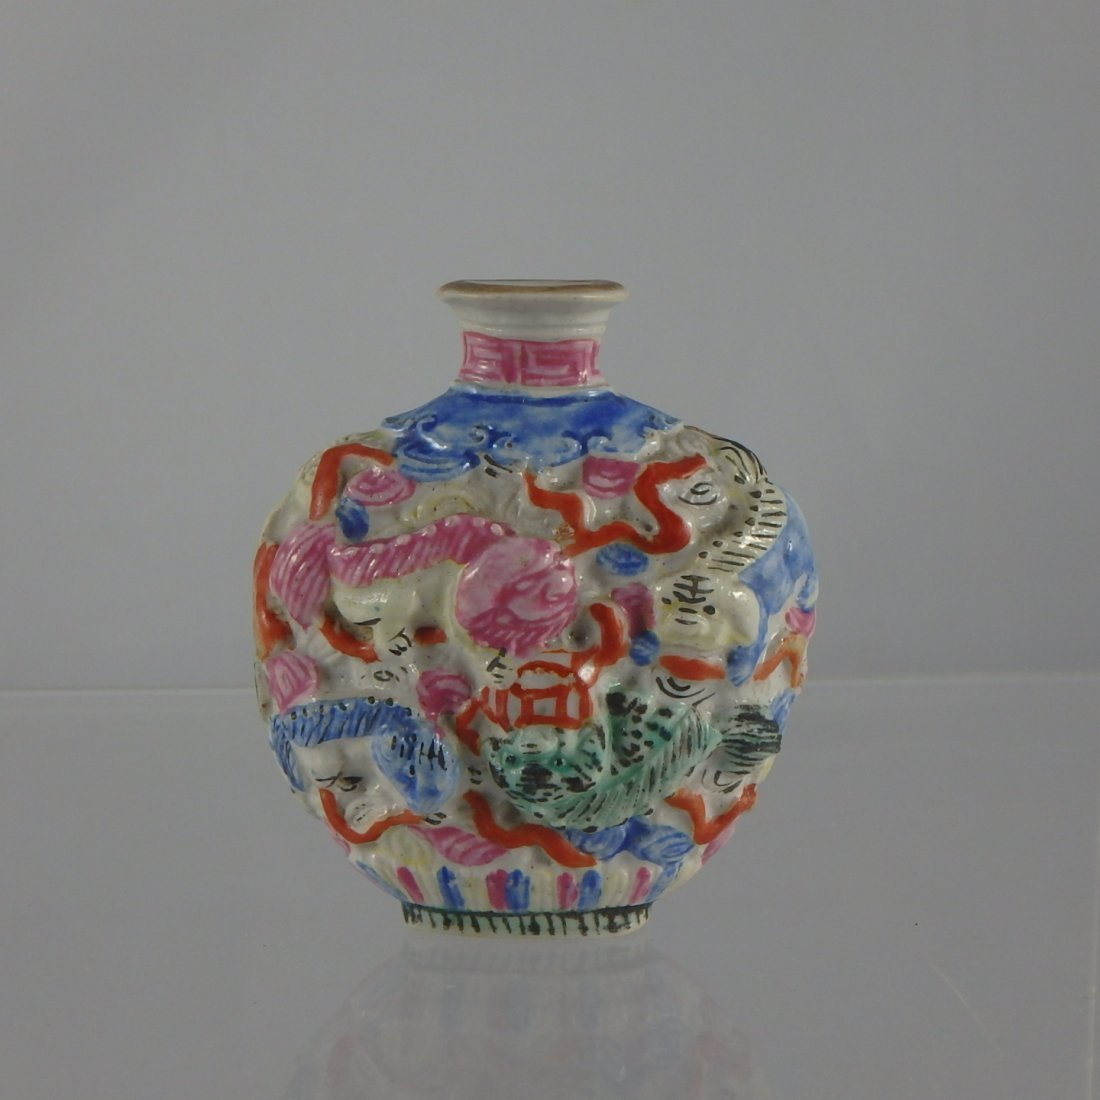 Chinese Qing Dynasty Porcelain Snuffbottle